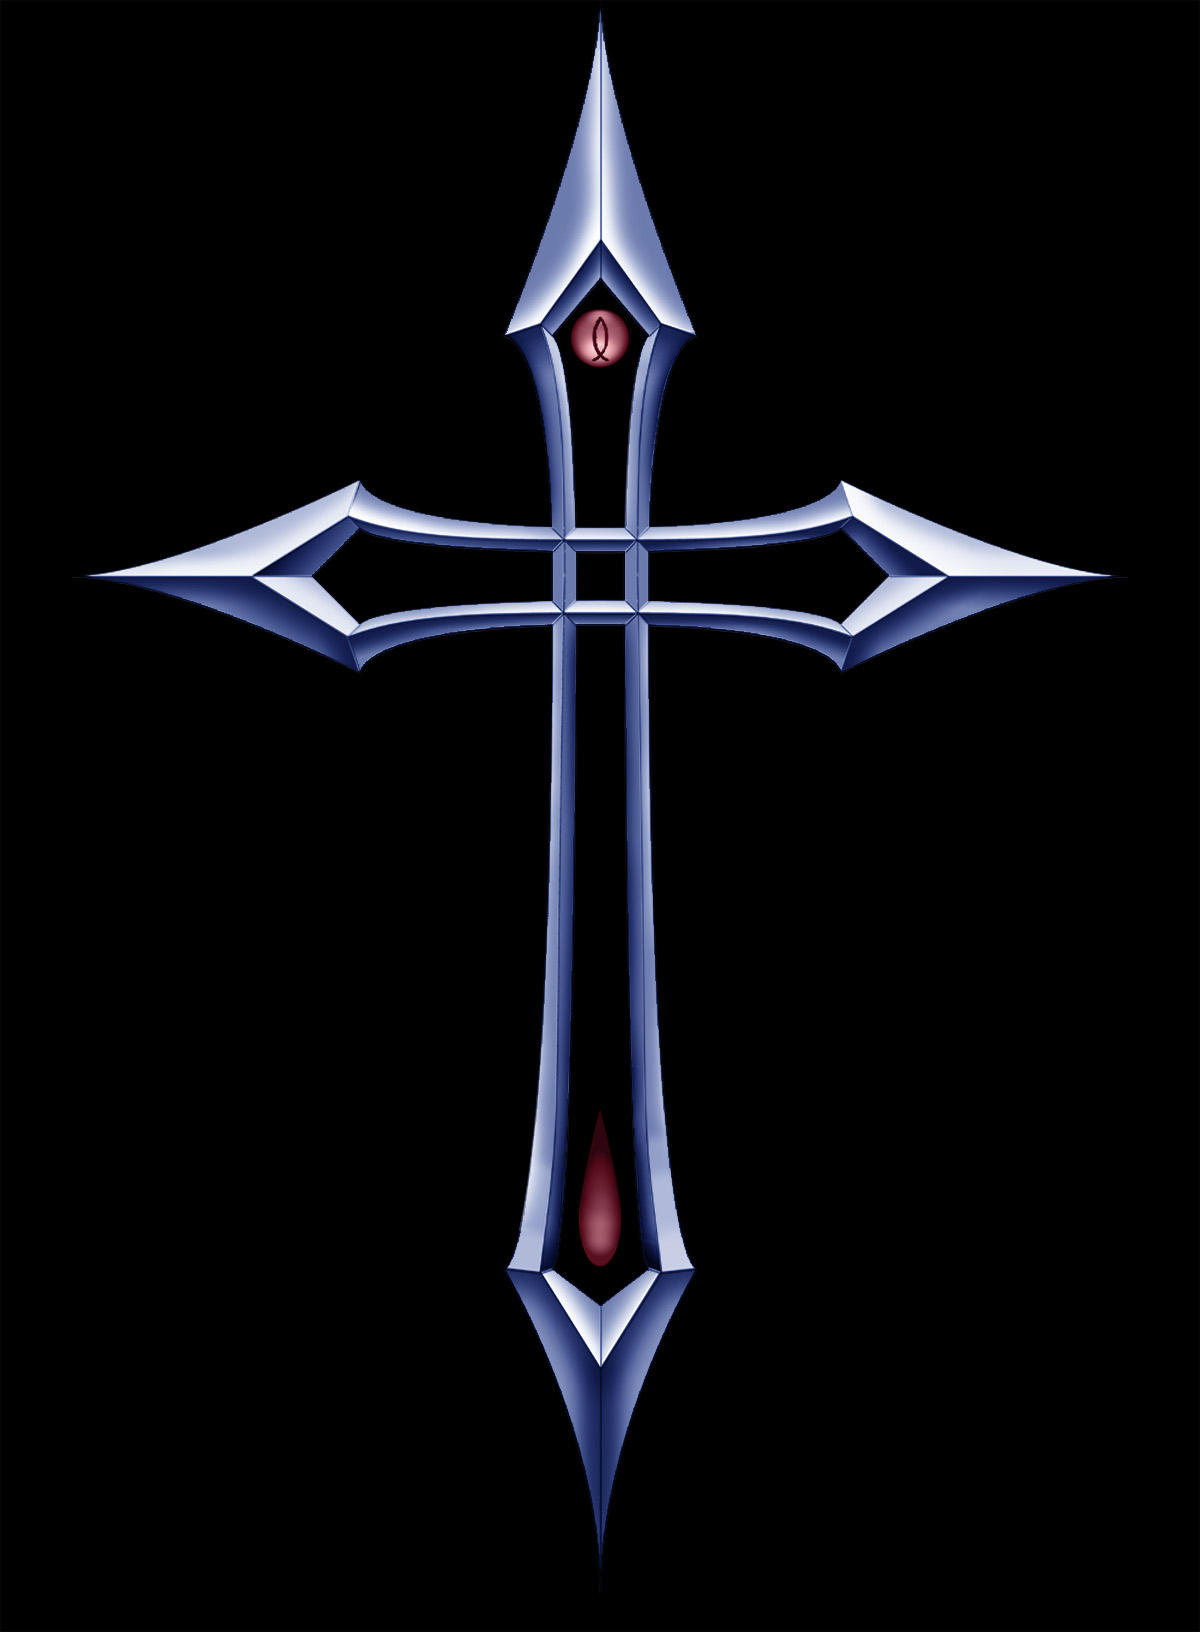 cool cross wallpaper images pictures becuo